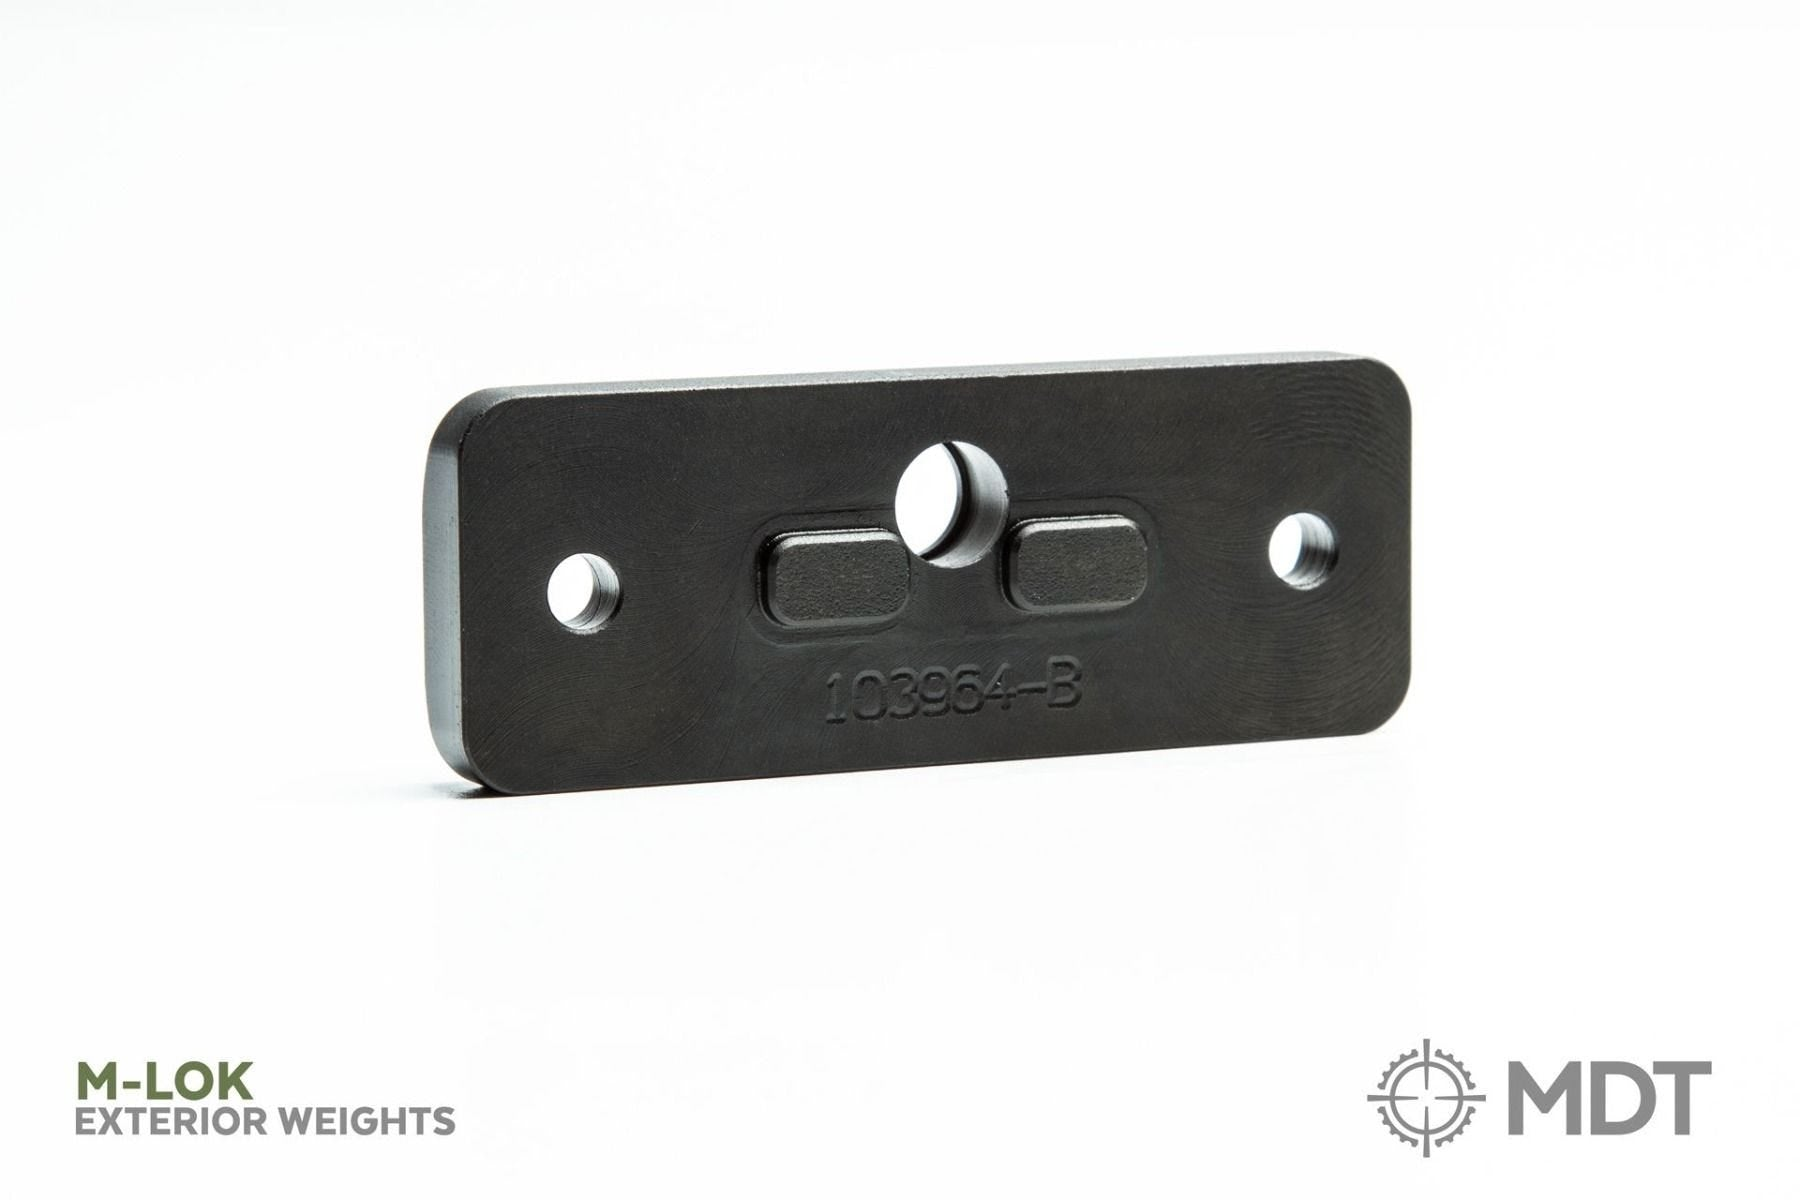 MDT ACC CHASSIS WEIGHTS - EXTERNAL FOREND (PAIR)